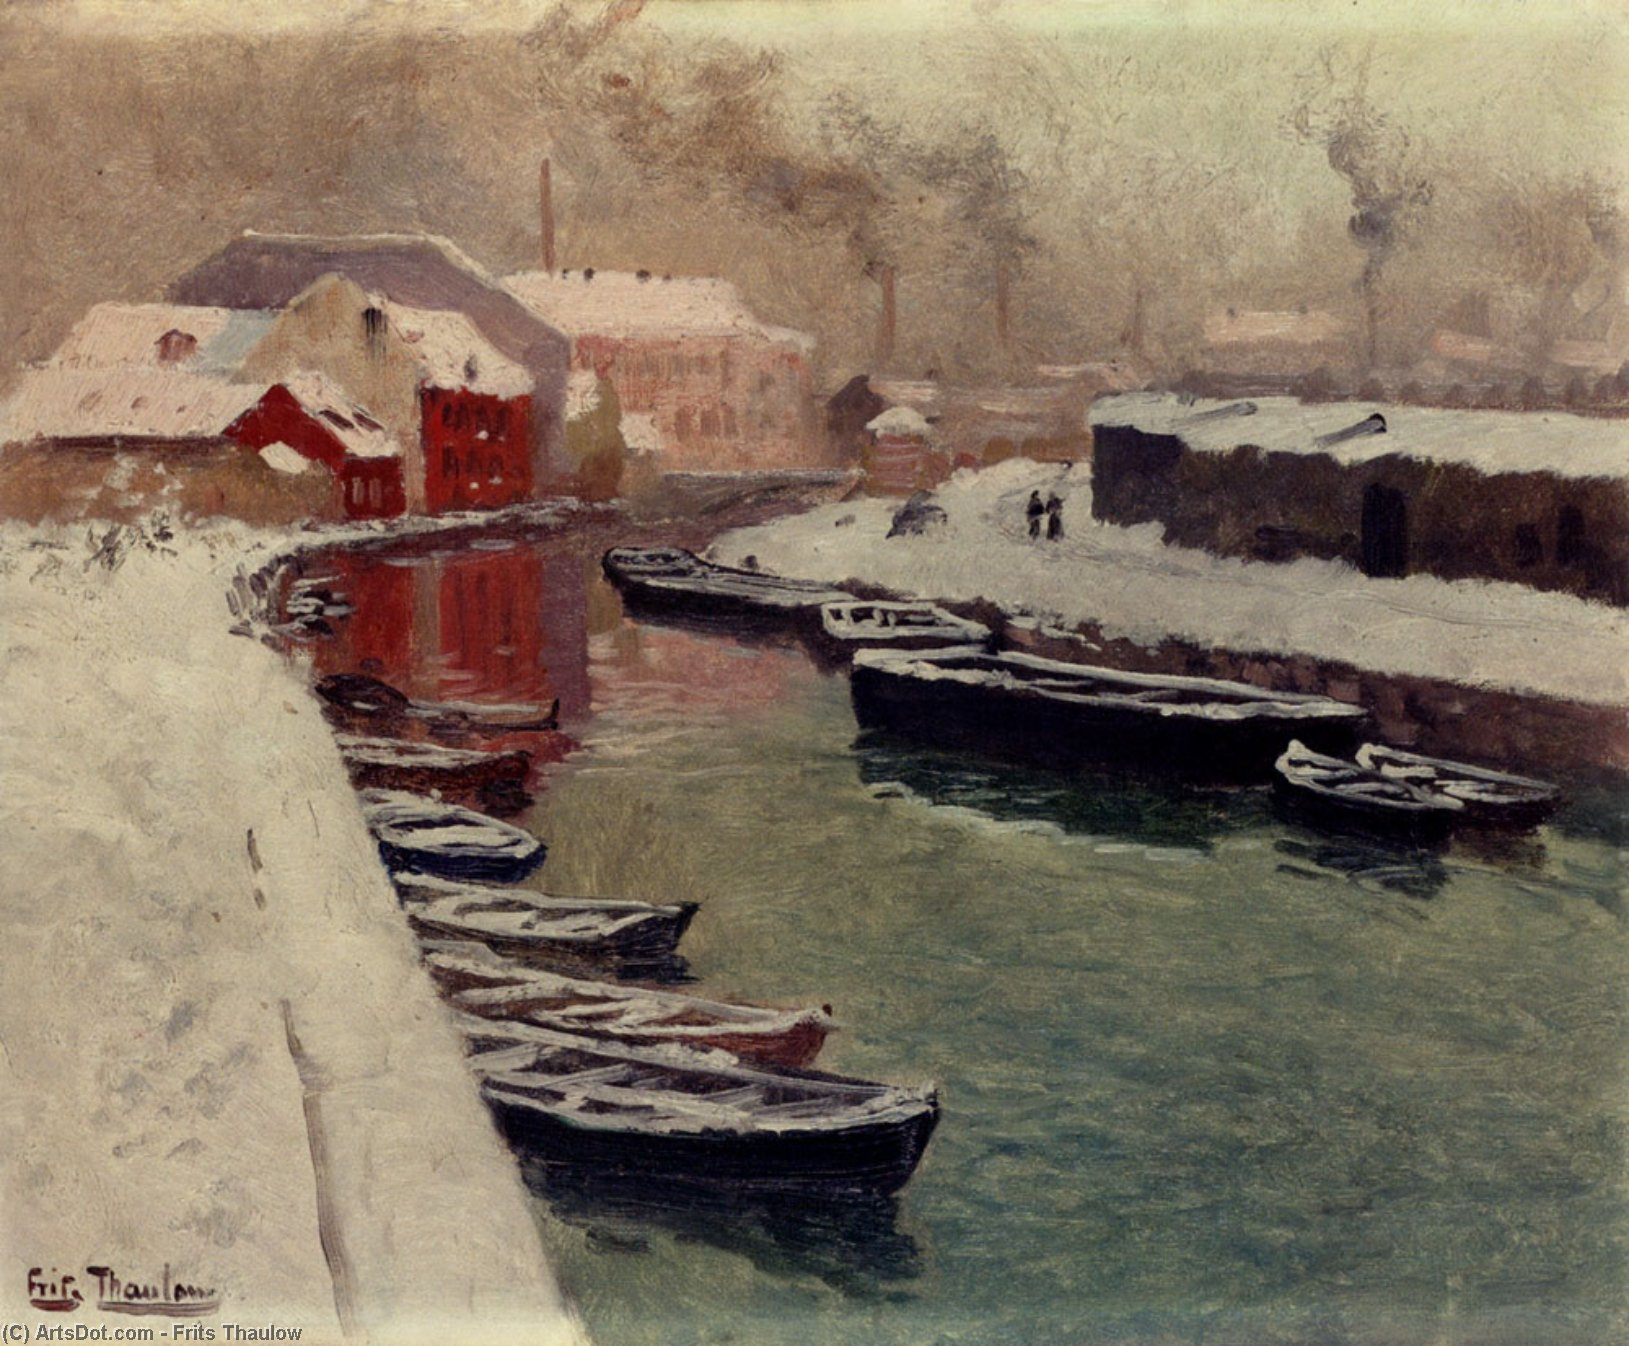 Un Nevado Harbor View, óleo sobre lienzo de Frits Thaulow (1847-1906, Norway)